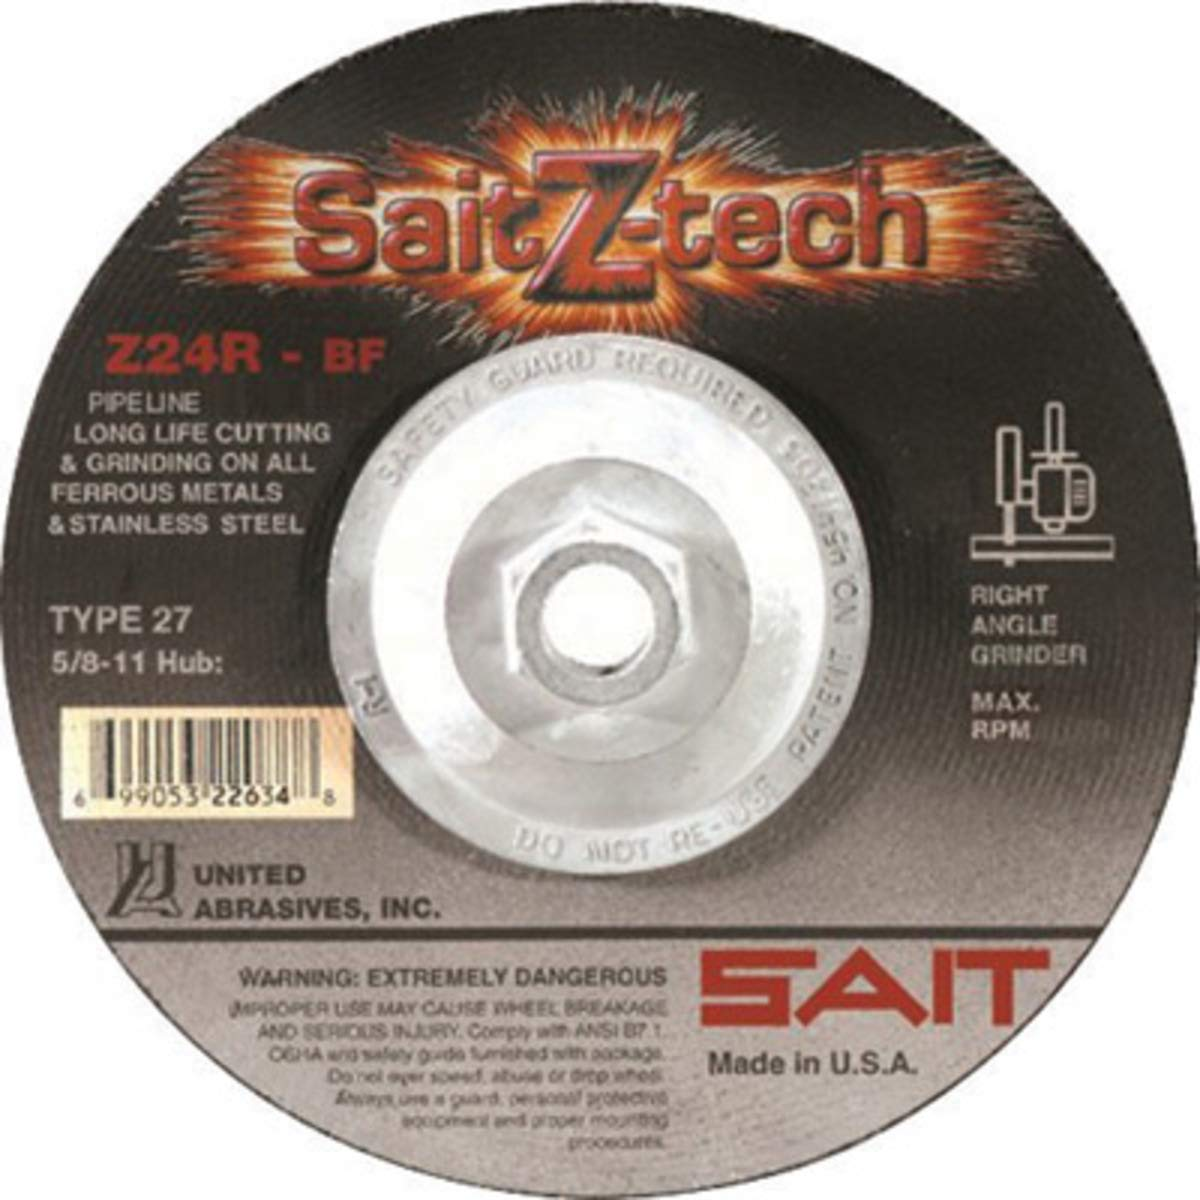 United Abrasives 4 1/2'' X 1/8'' X 5/8'' - 11 SaitZ-tech Zirconium Type 27 Cut Off Wheel, 10 Each